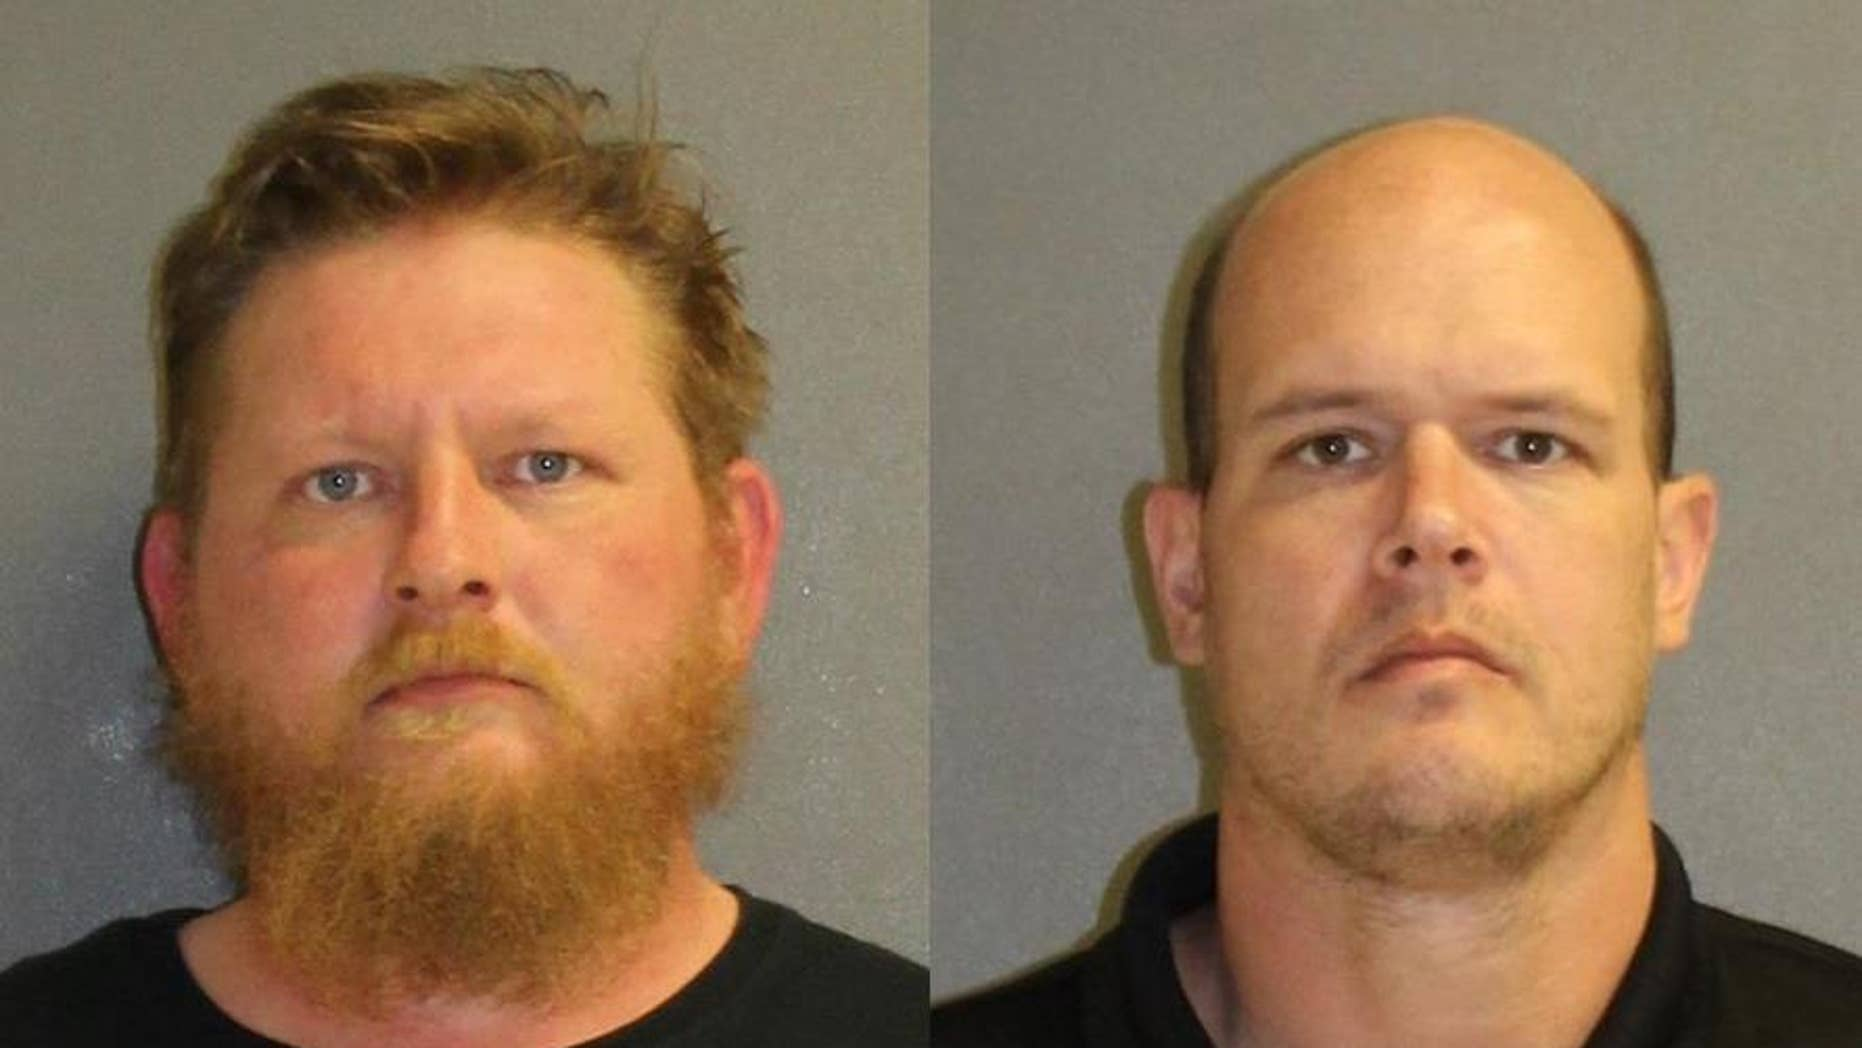 Lafe Best, 37, (left) and Benjamin Worster, 39, (right) wanted a 3 year old girl to marry her and rape.